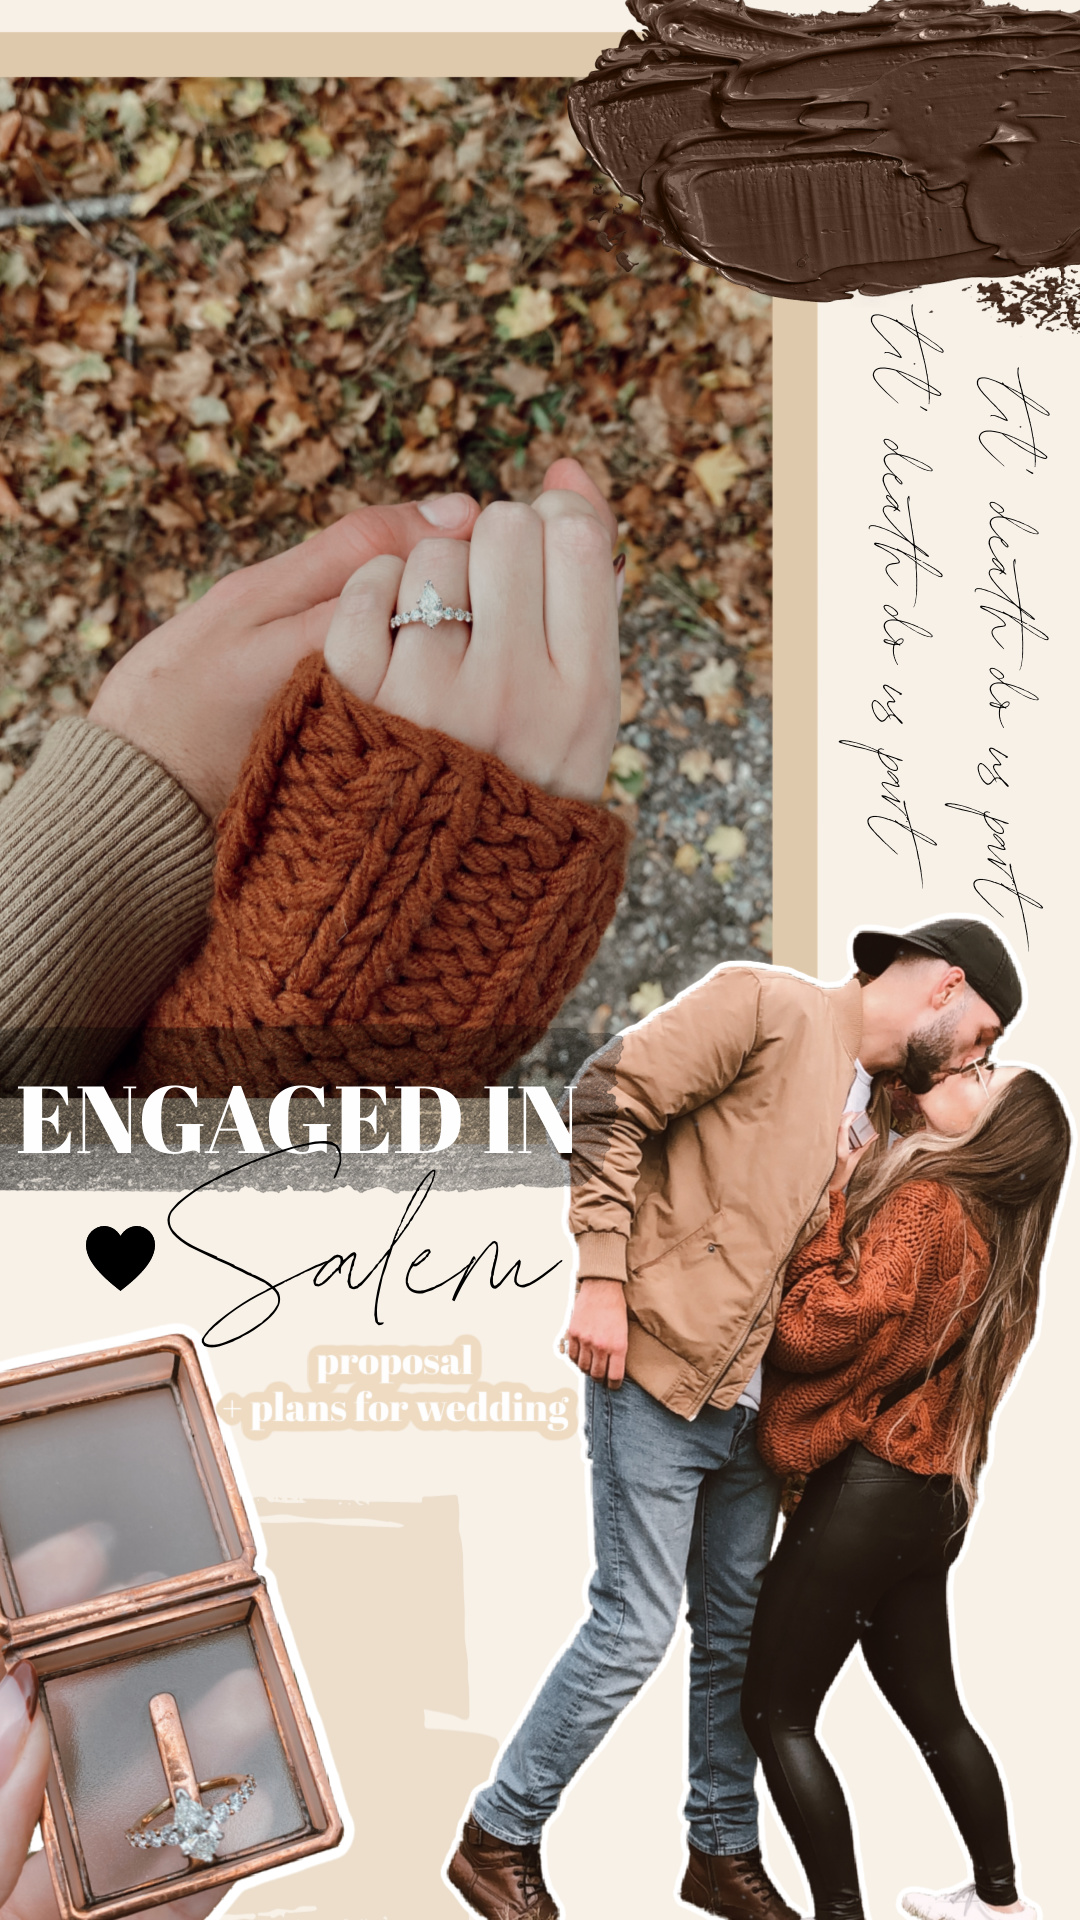 ENGAGED IN SALEM